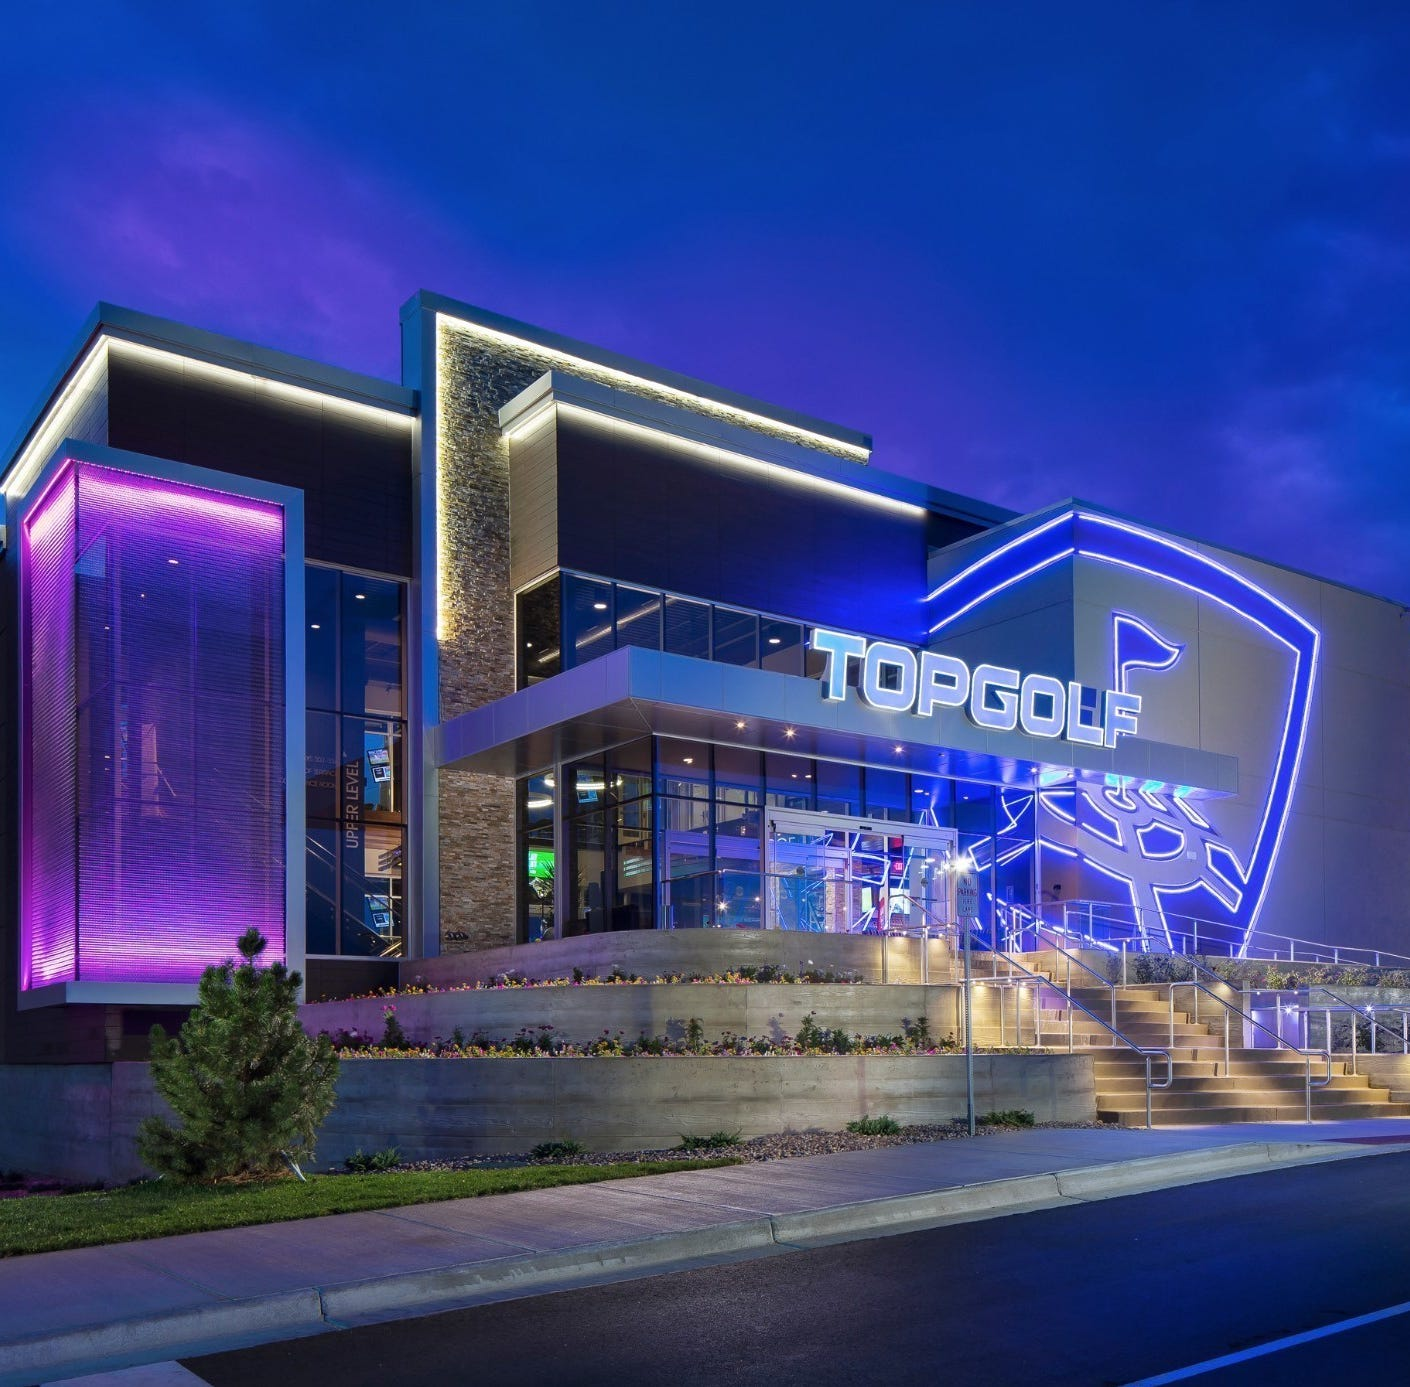 Topgolf to hire 500 for Great Lakes Crossing location